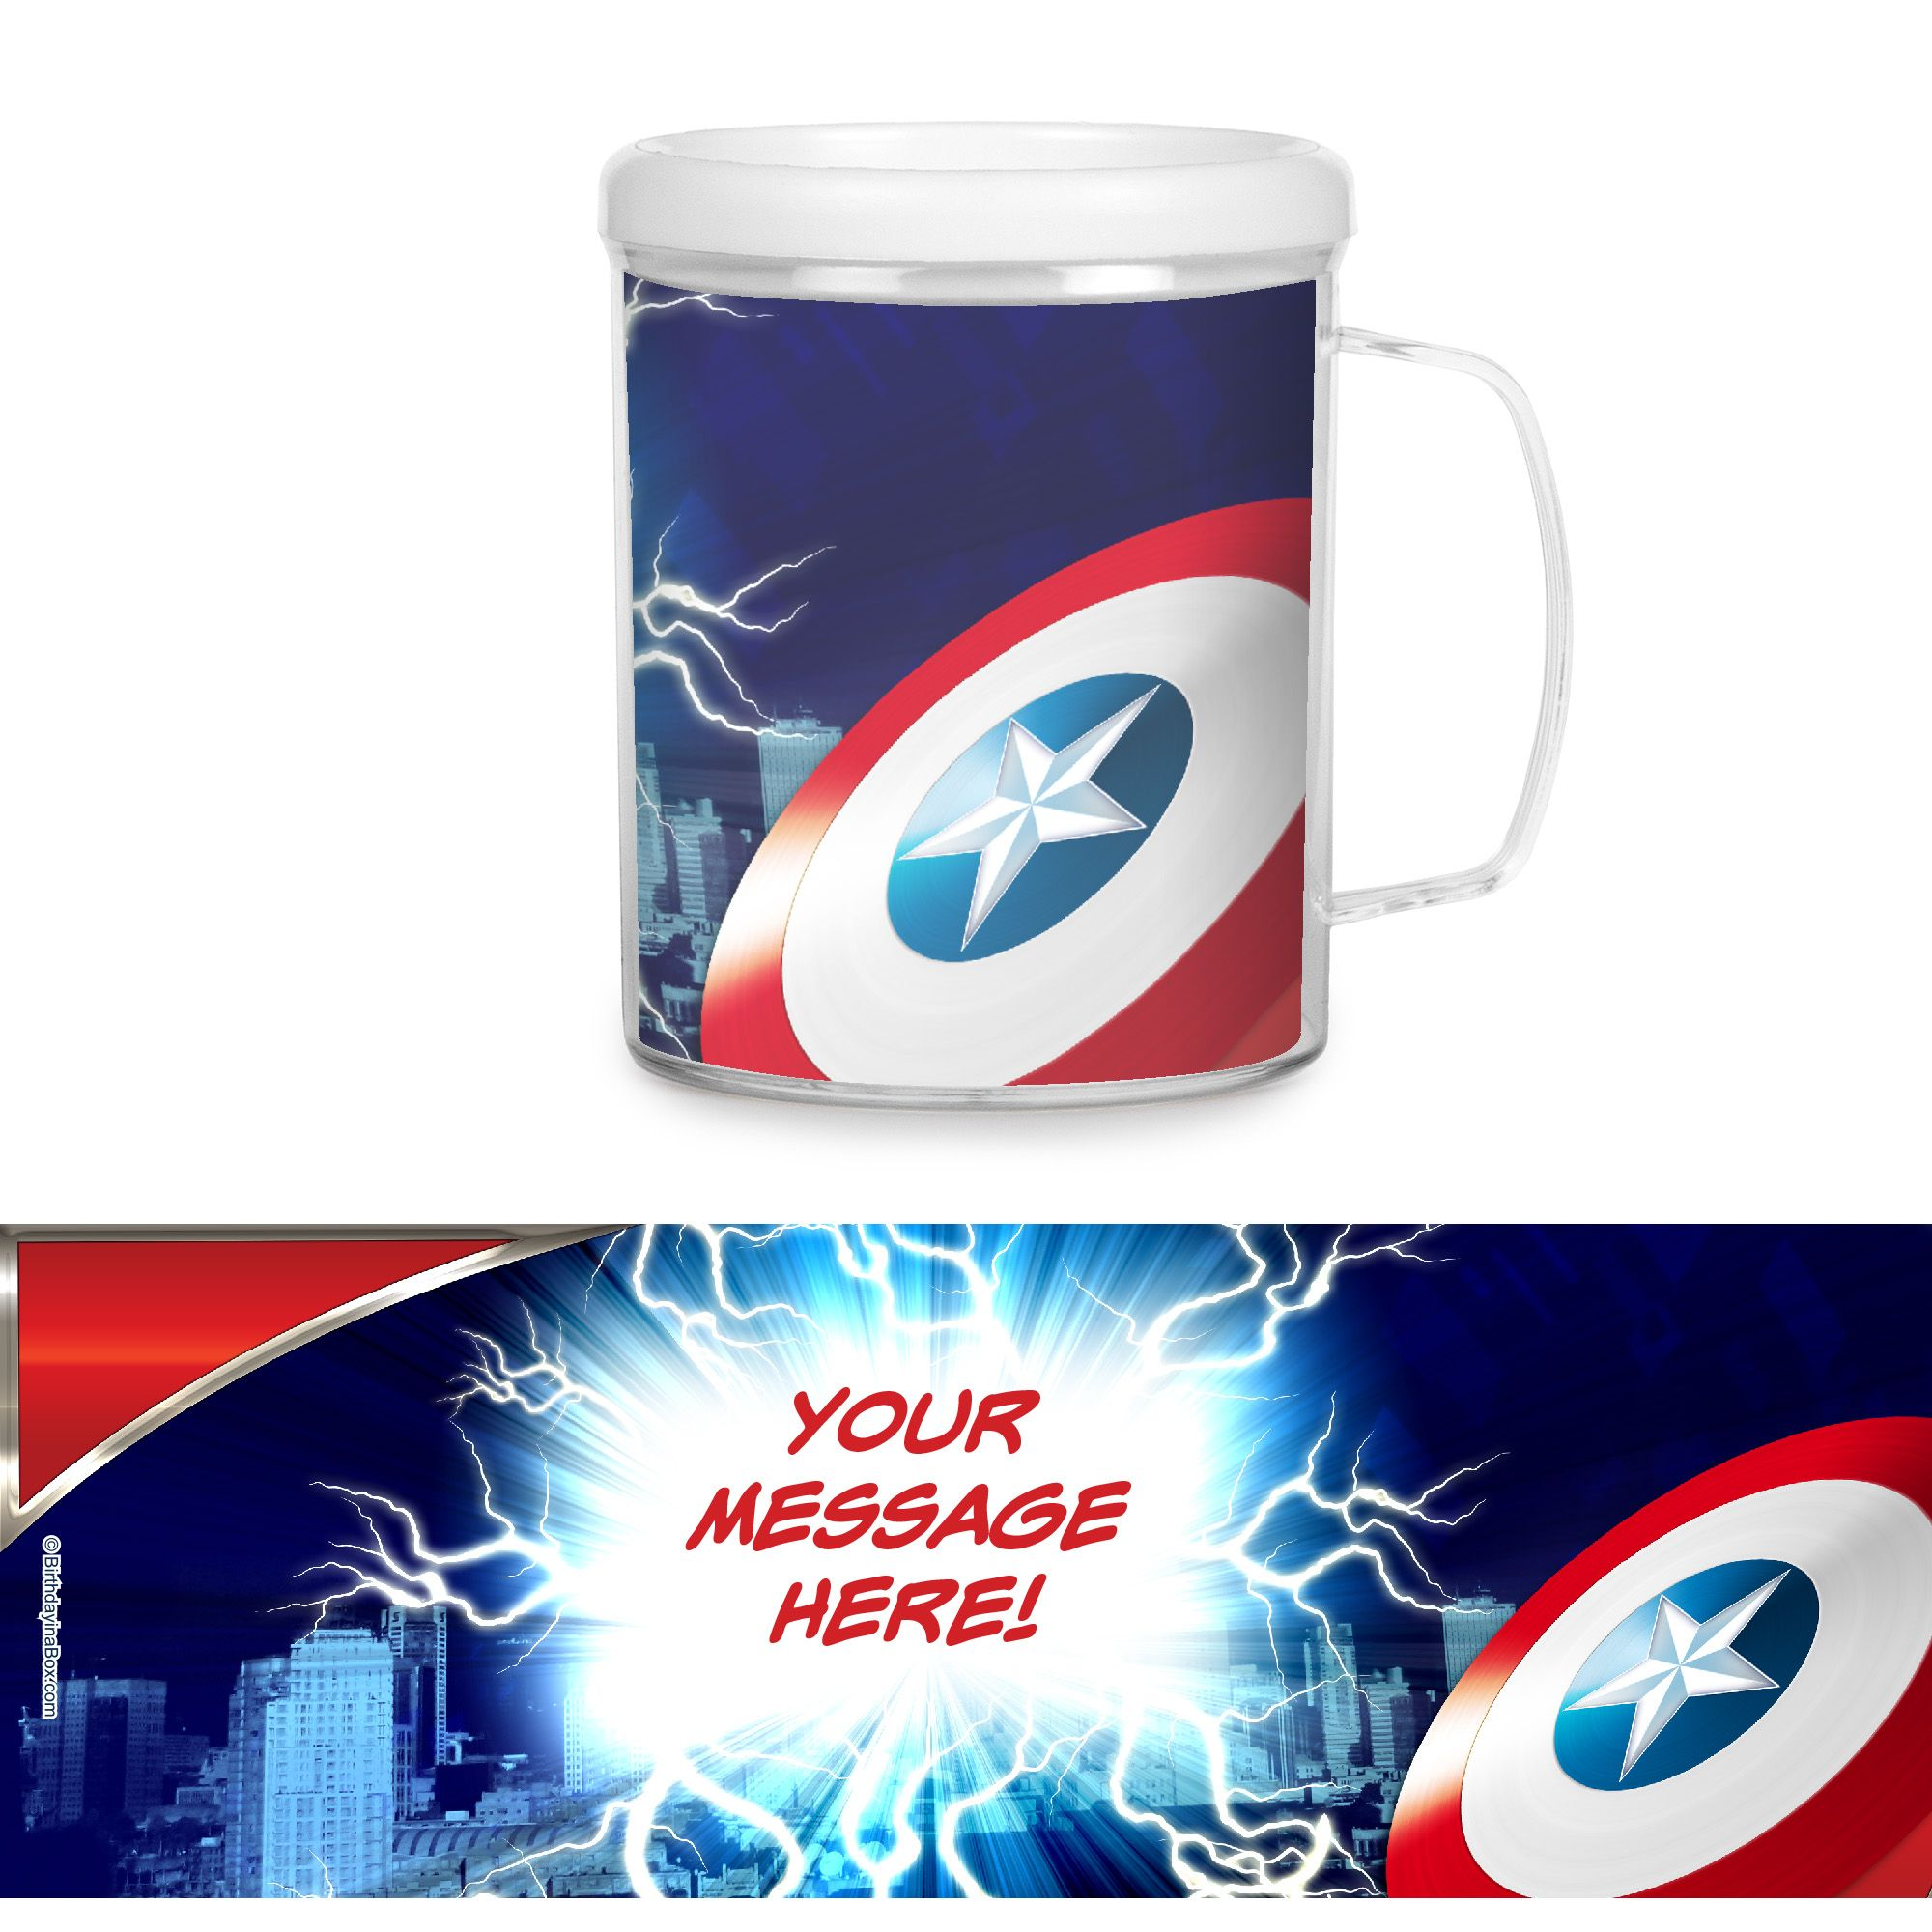 Avenging Heroes Personalized Favor Mugs (Each) - Party Supplies BB102735CUP